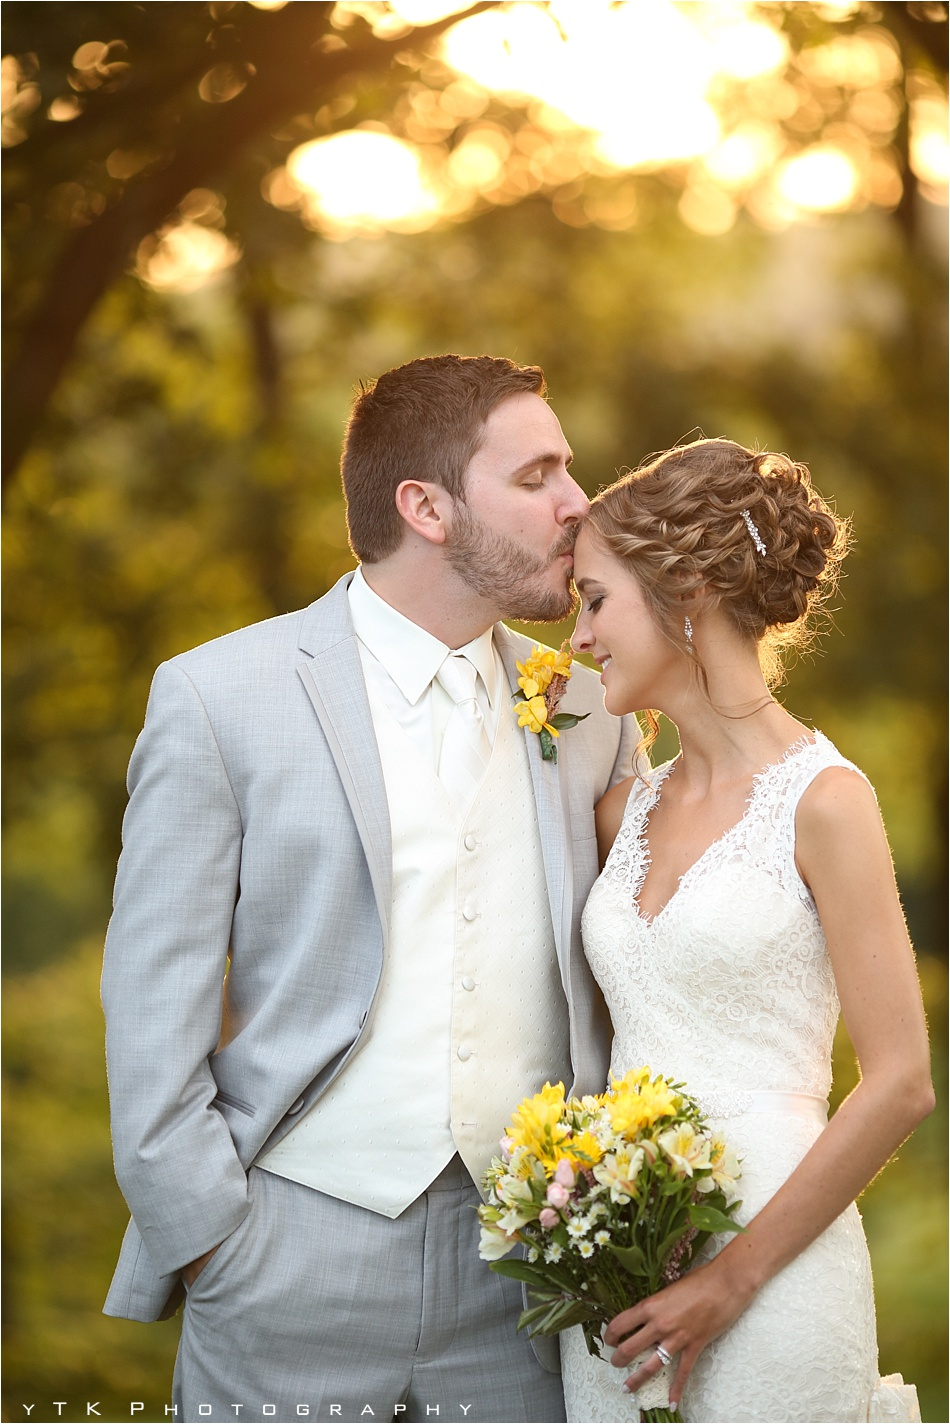 WV_Wedding_Photography_YTK037